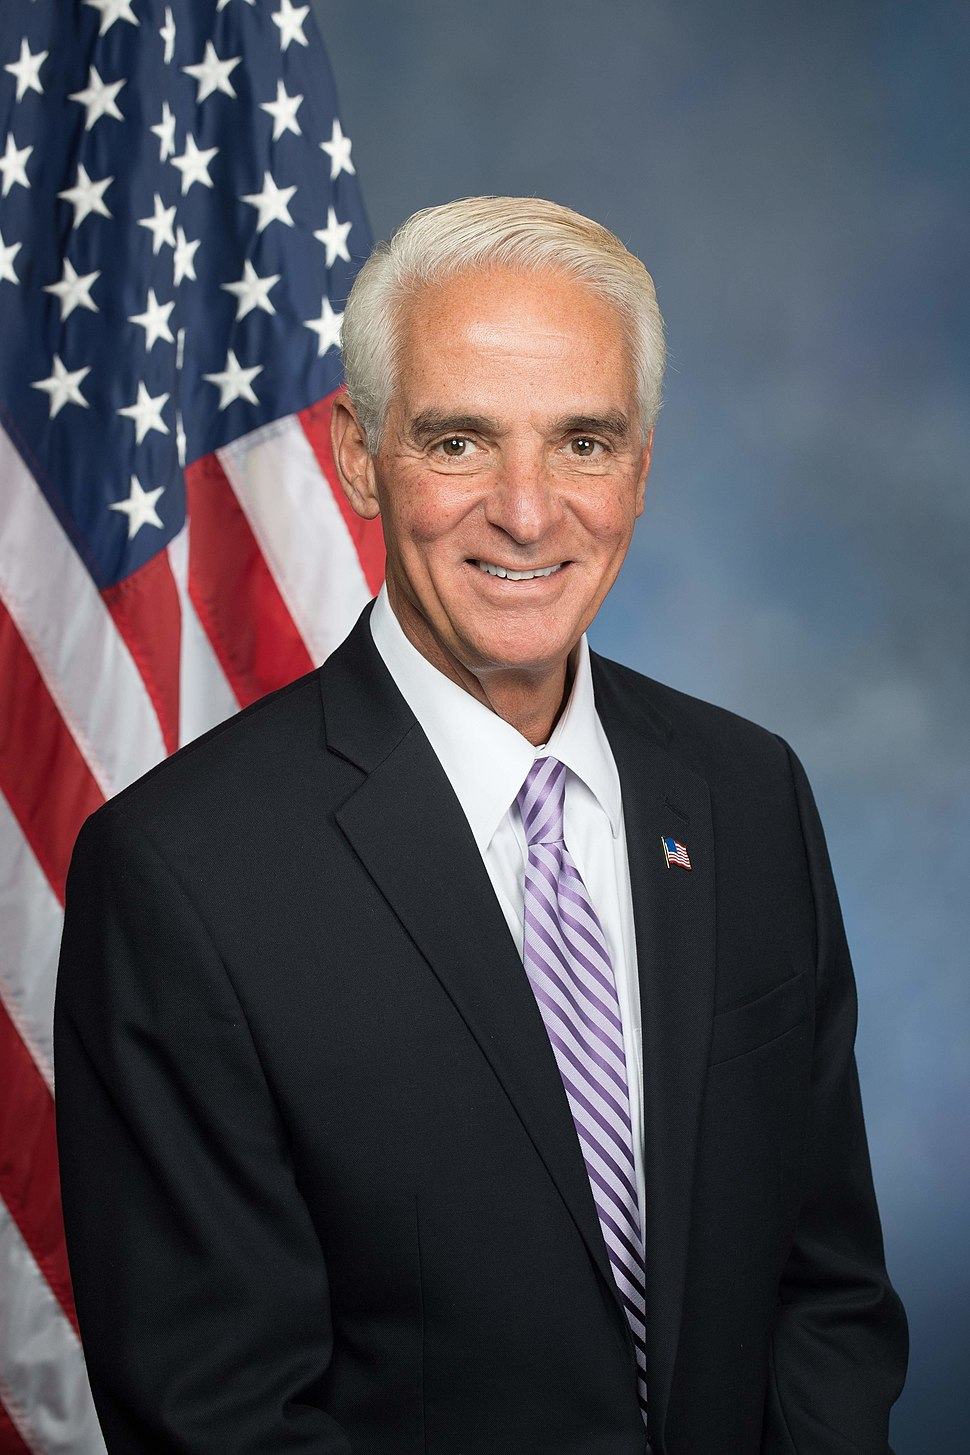 Charlie Crist 115th Congress photo